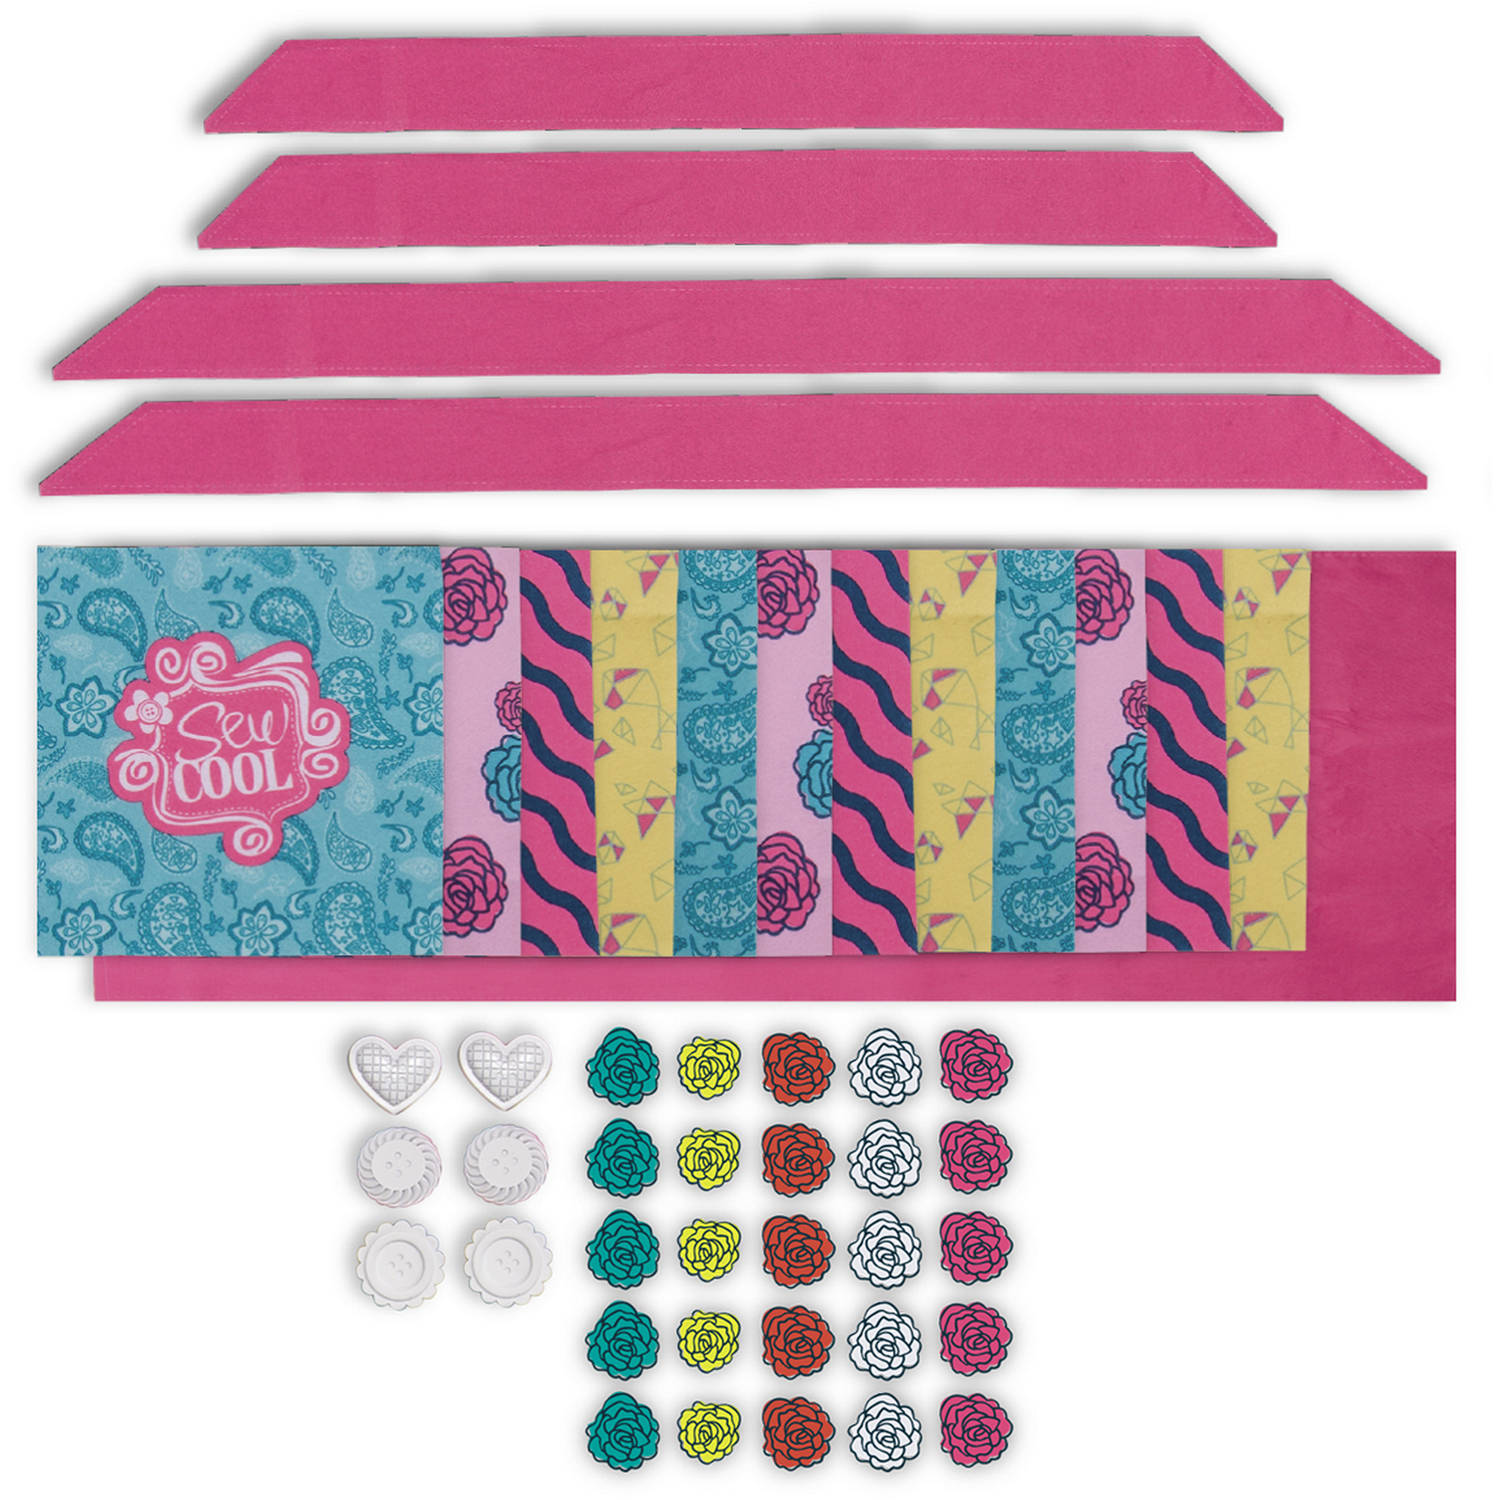 Sew Cool Cozy Quilt Fabric Kit